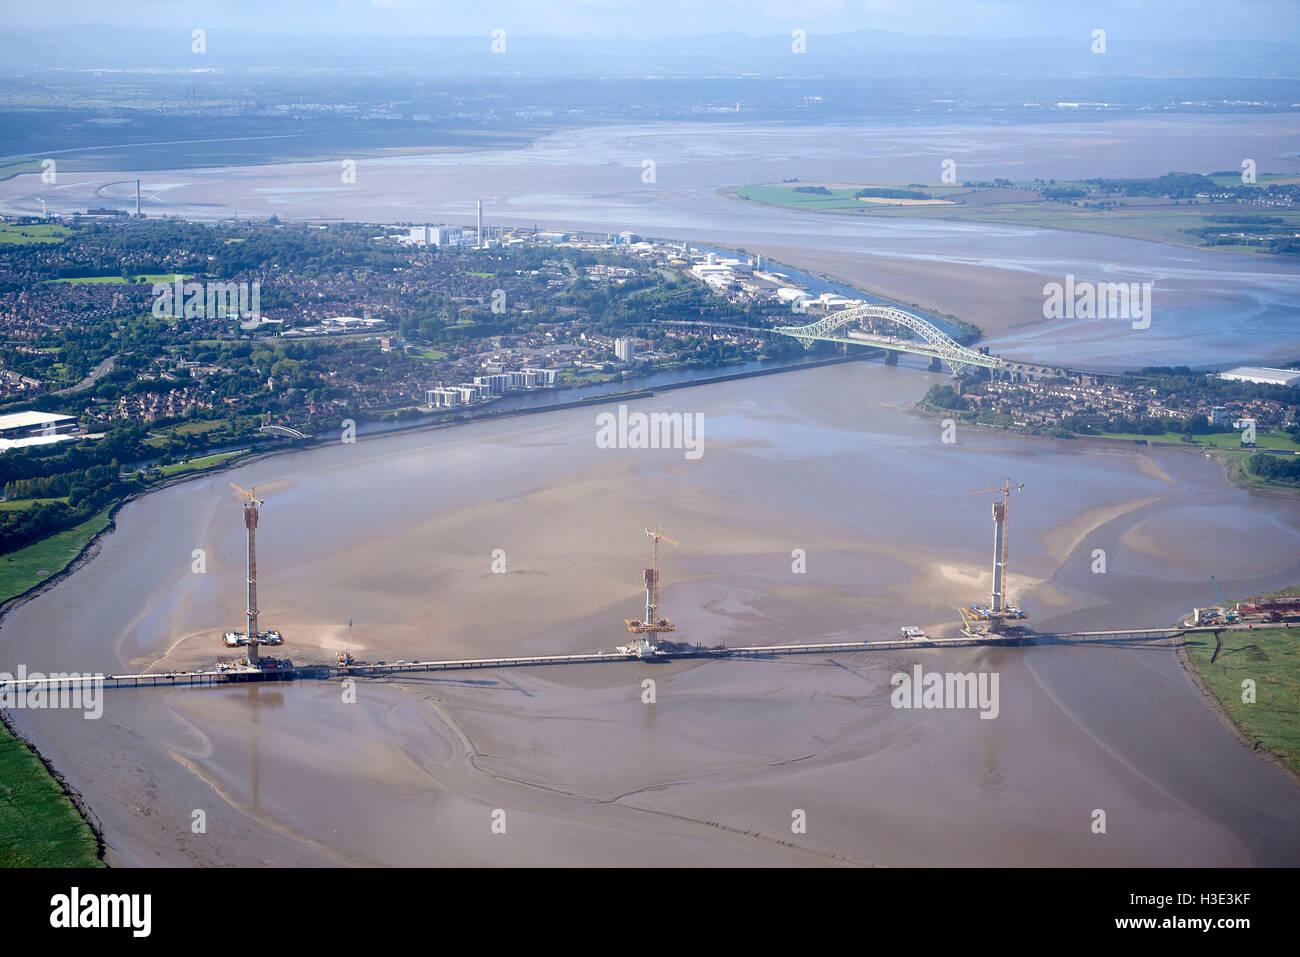 An aerial view of the new River Mersey Crossing at Runcorn, Merseyside, NorthWest England - Stock Image